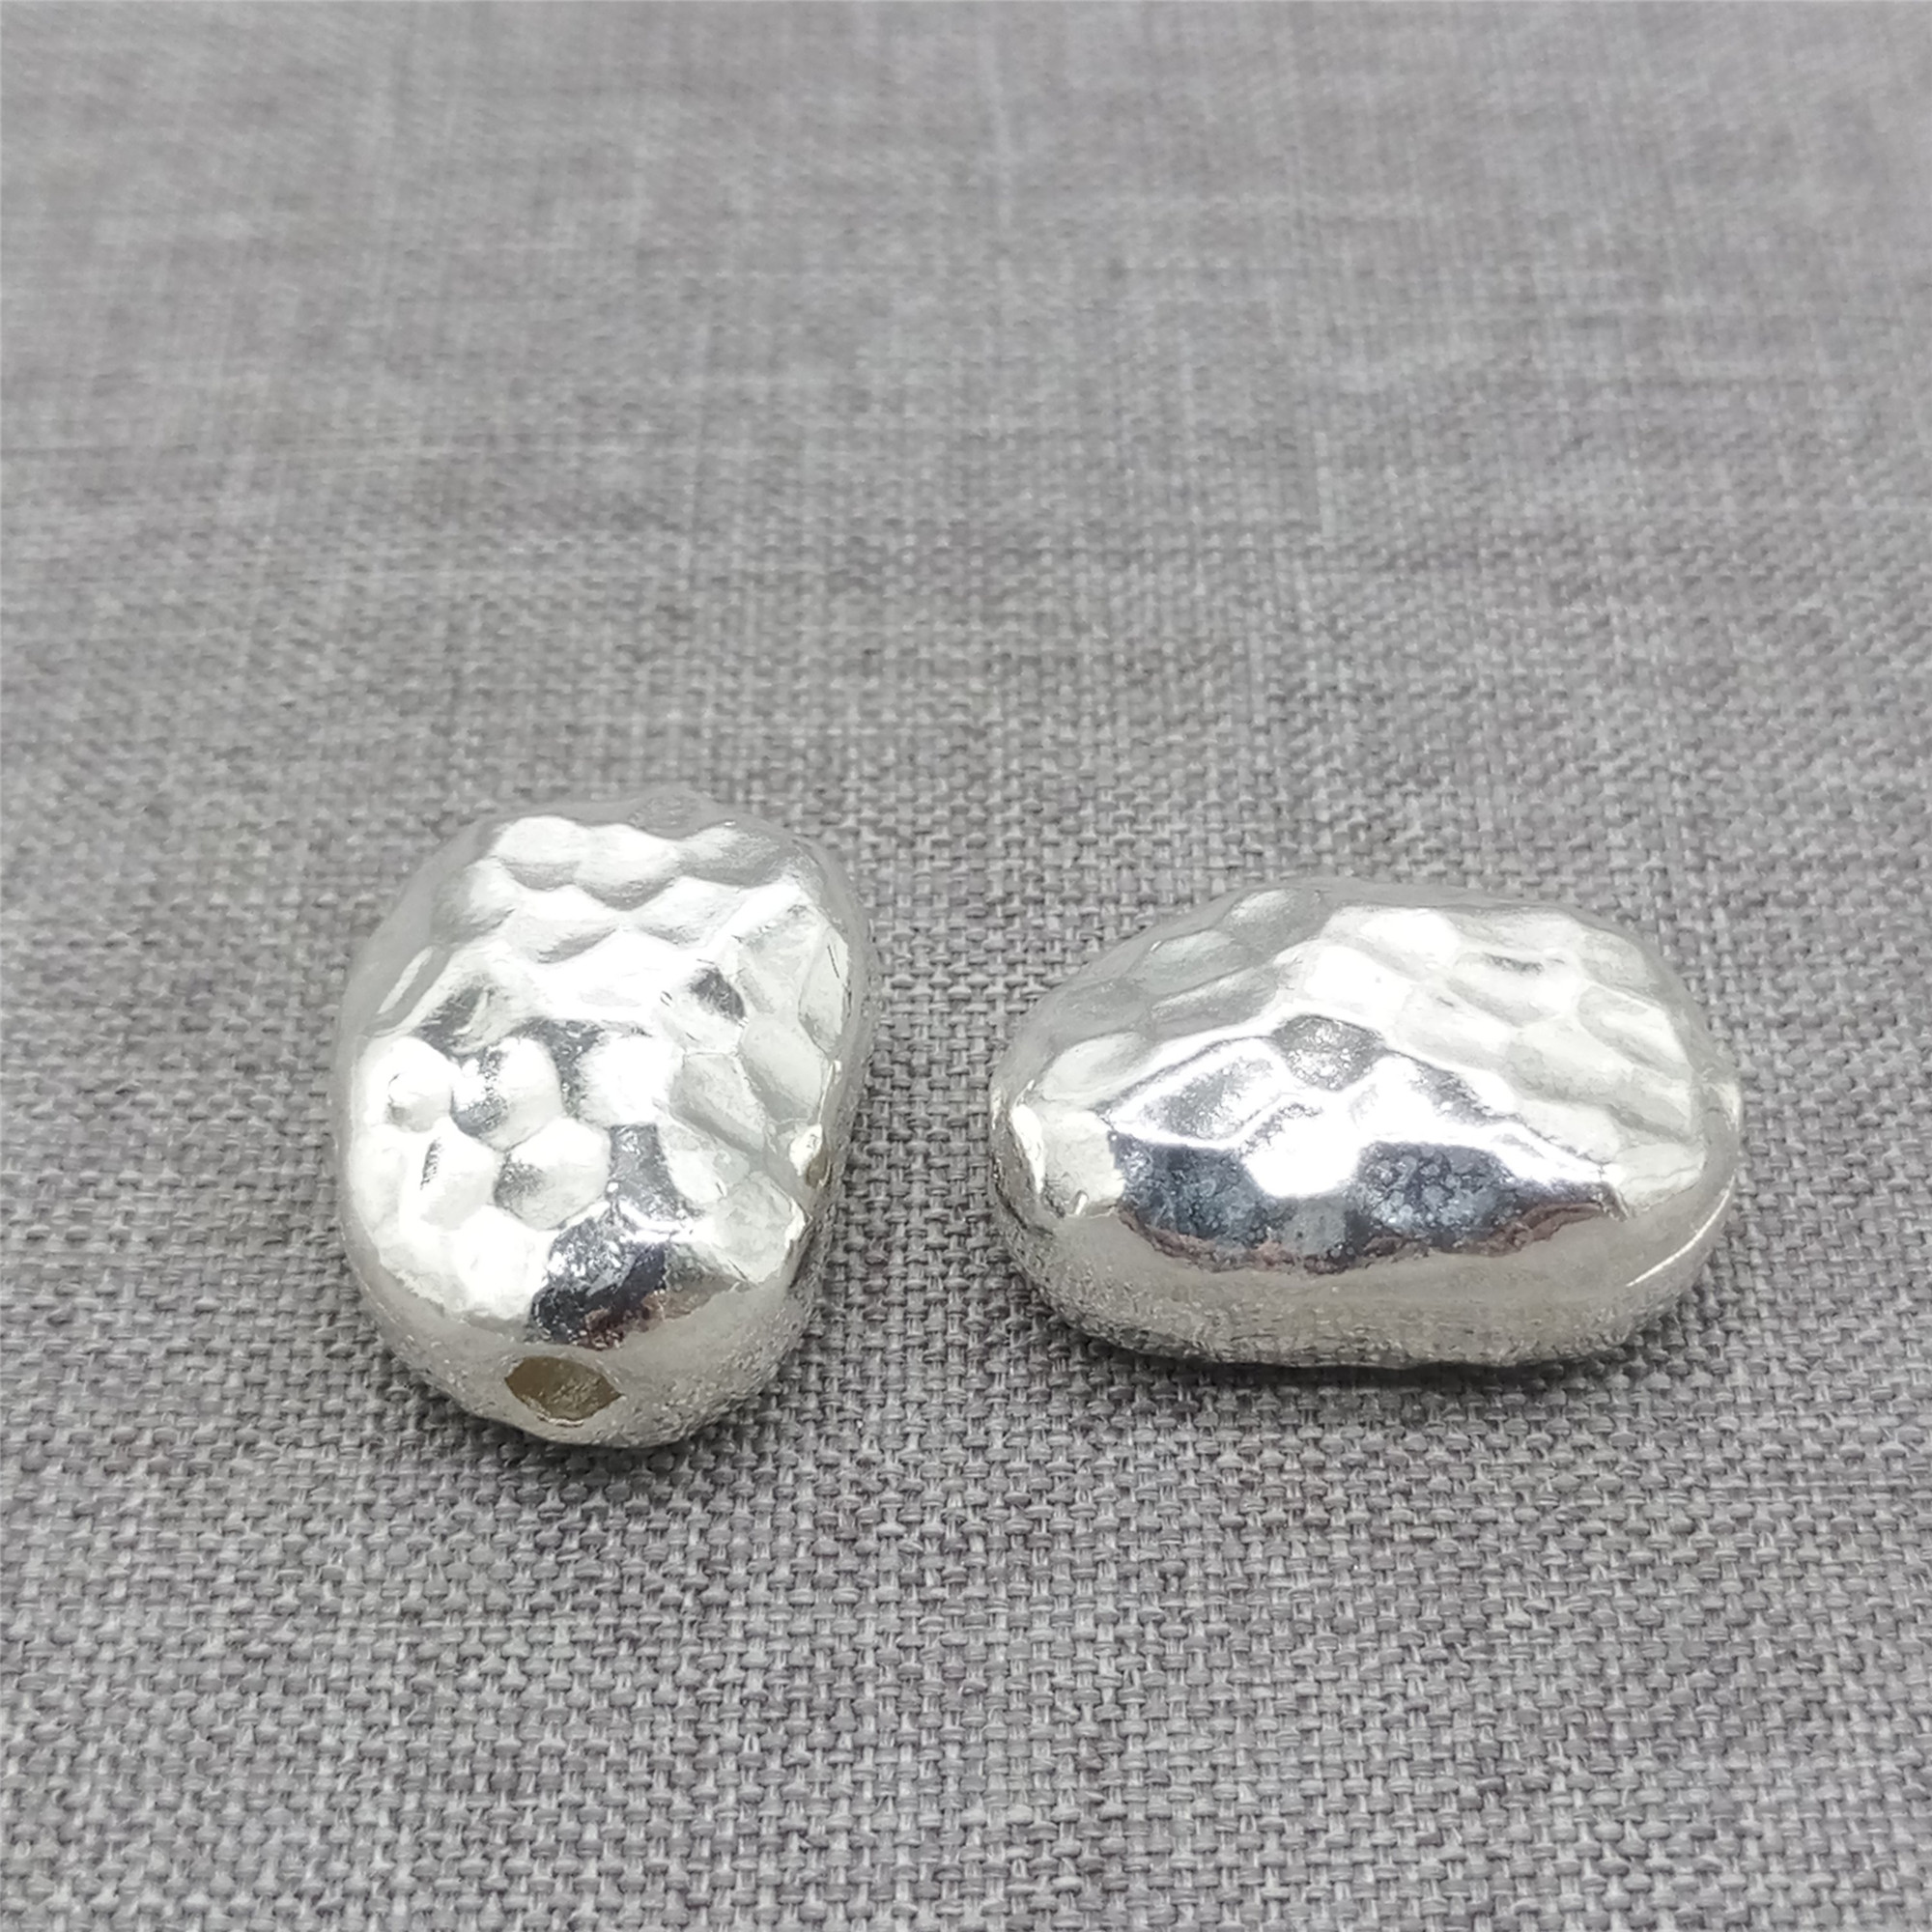 20 Pcs Sterling Silver Nugget Spacers Seamless WSP356X20 Wholesale See Discount Coupons in Item Details